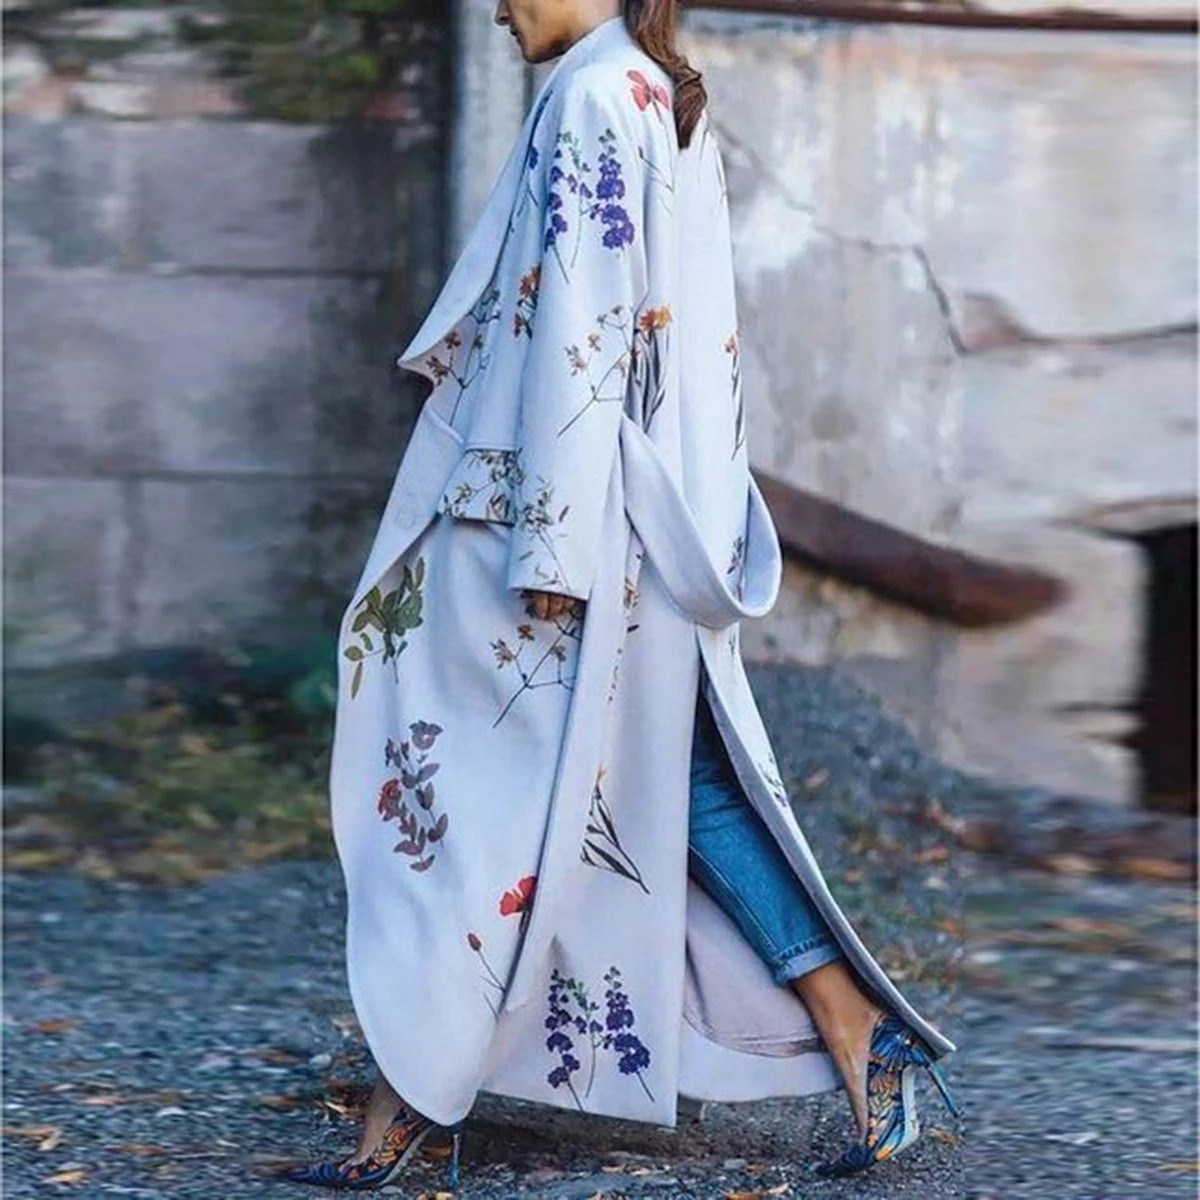 2019 Autumn Casual   Trench   Coat Women Pattern Long Coat Outwear Floral Print Loose Fashion   Trench   Coat